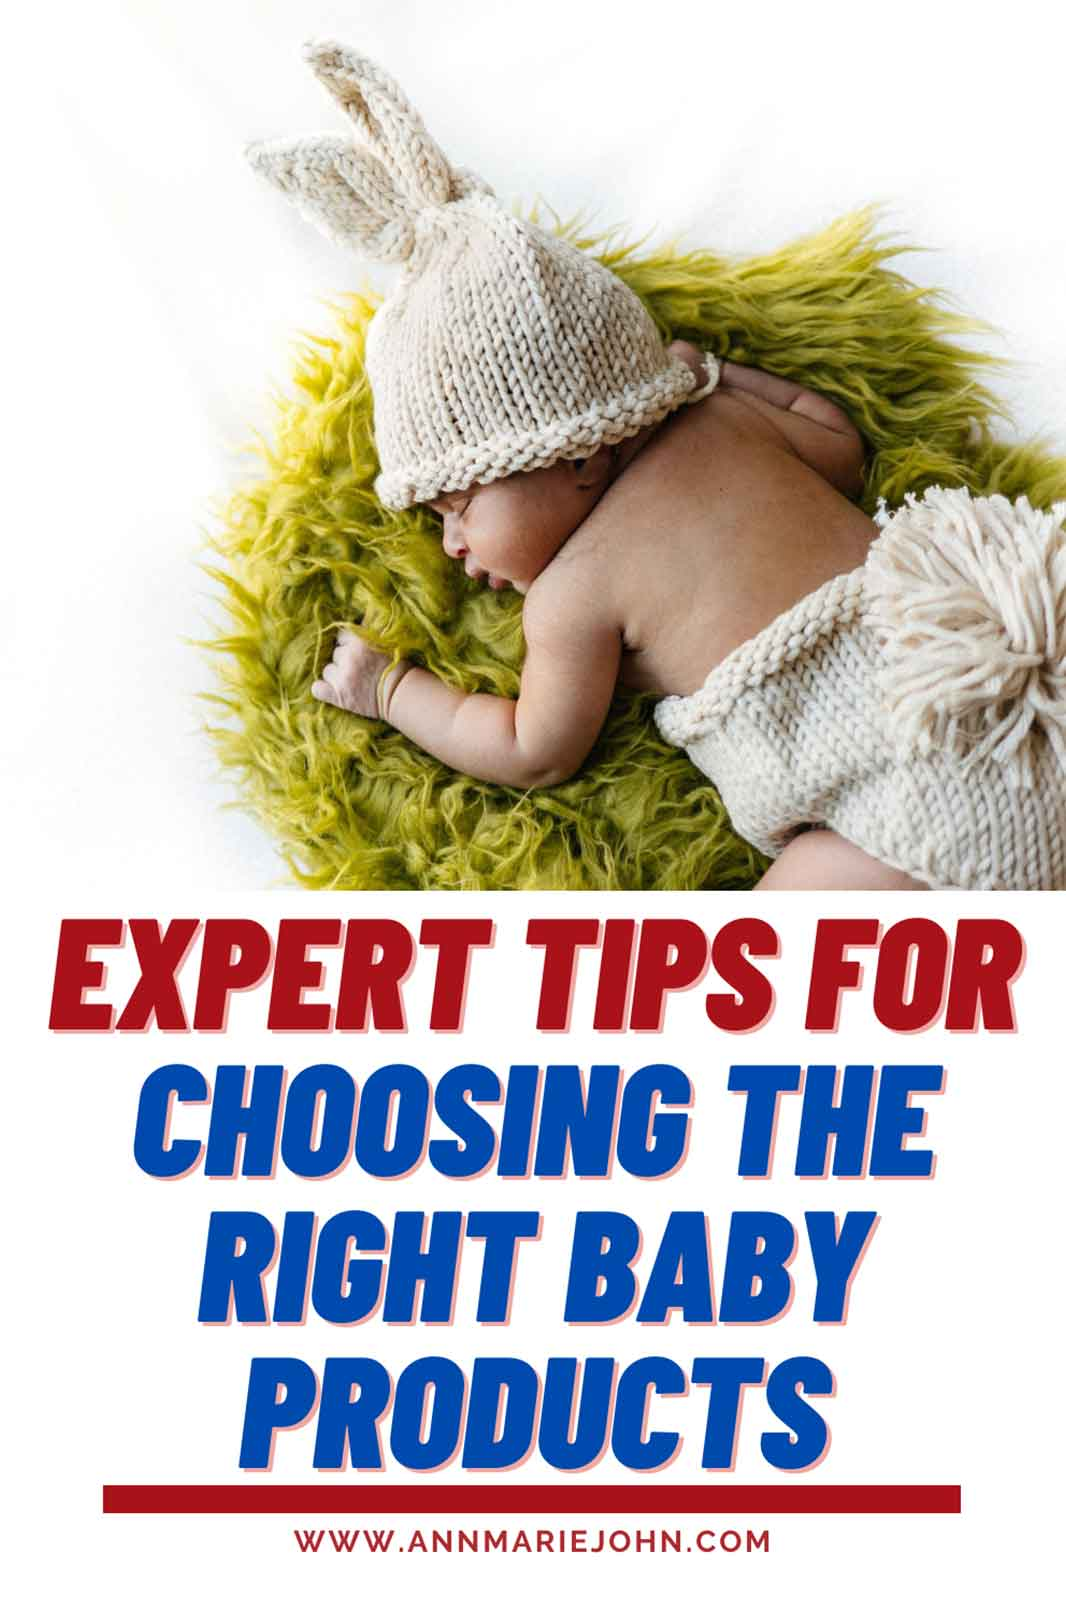 Expert Tips for Choosing the Right Baby Products